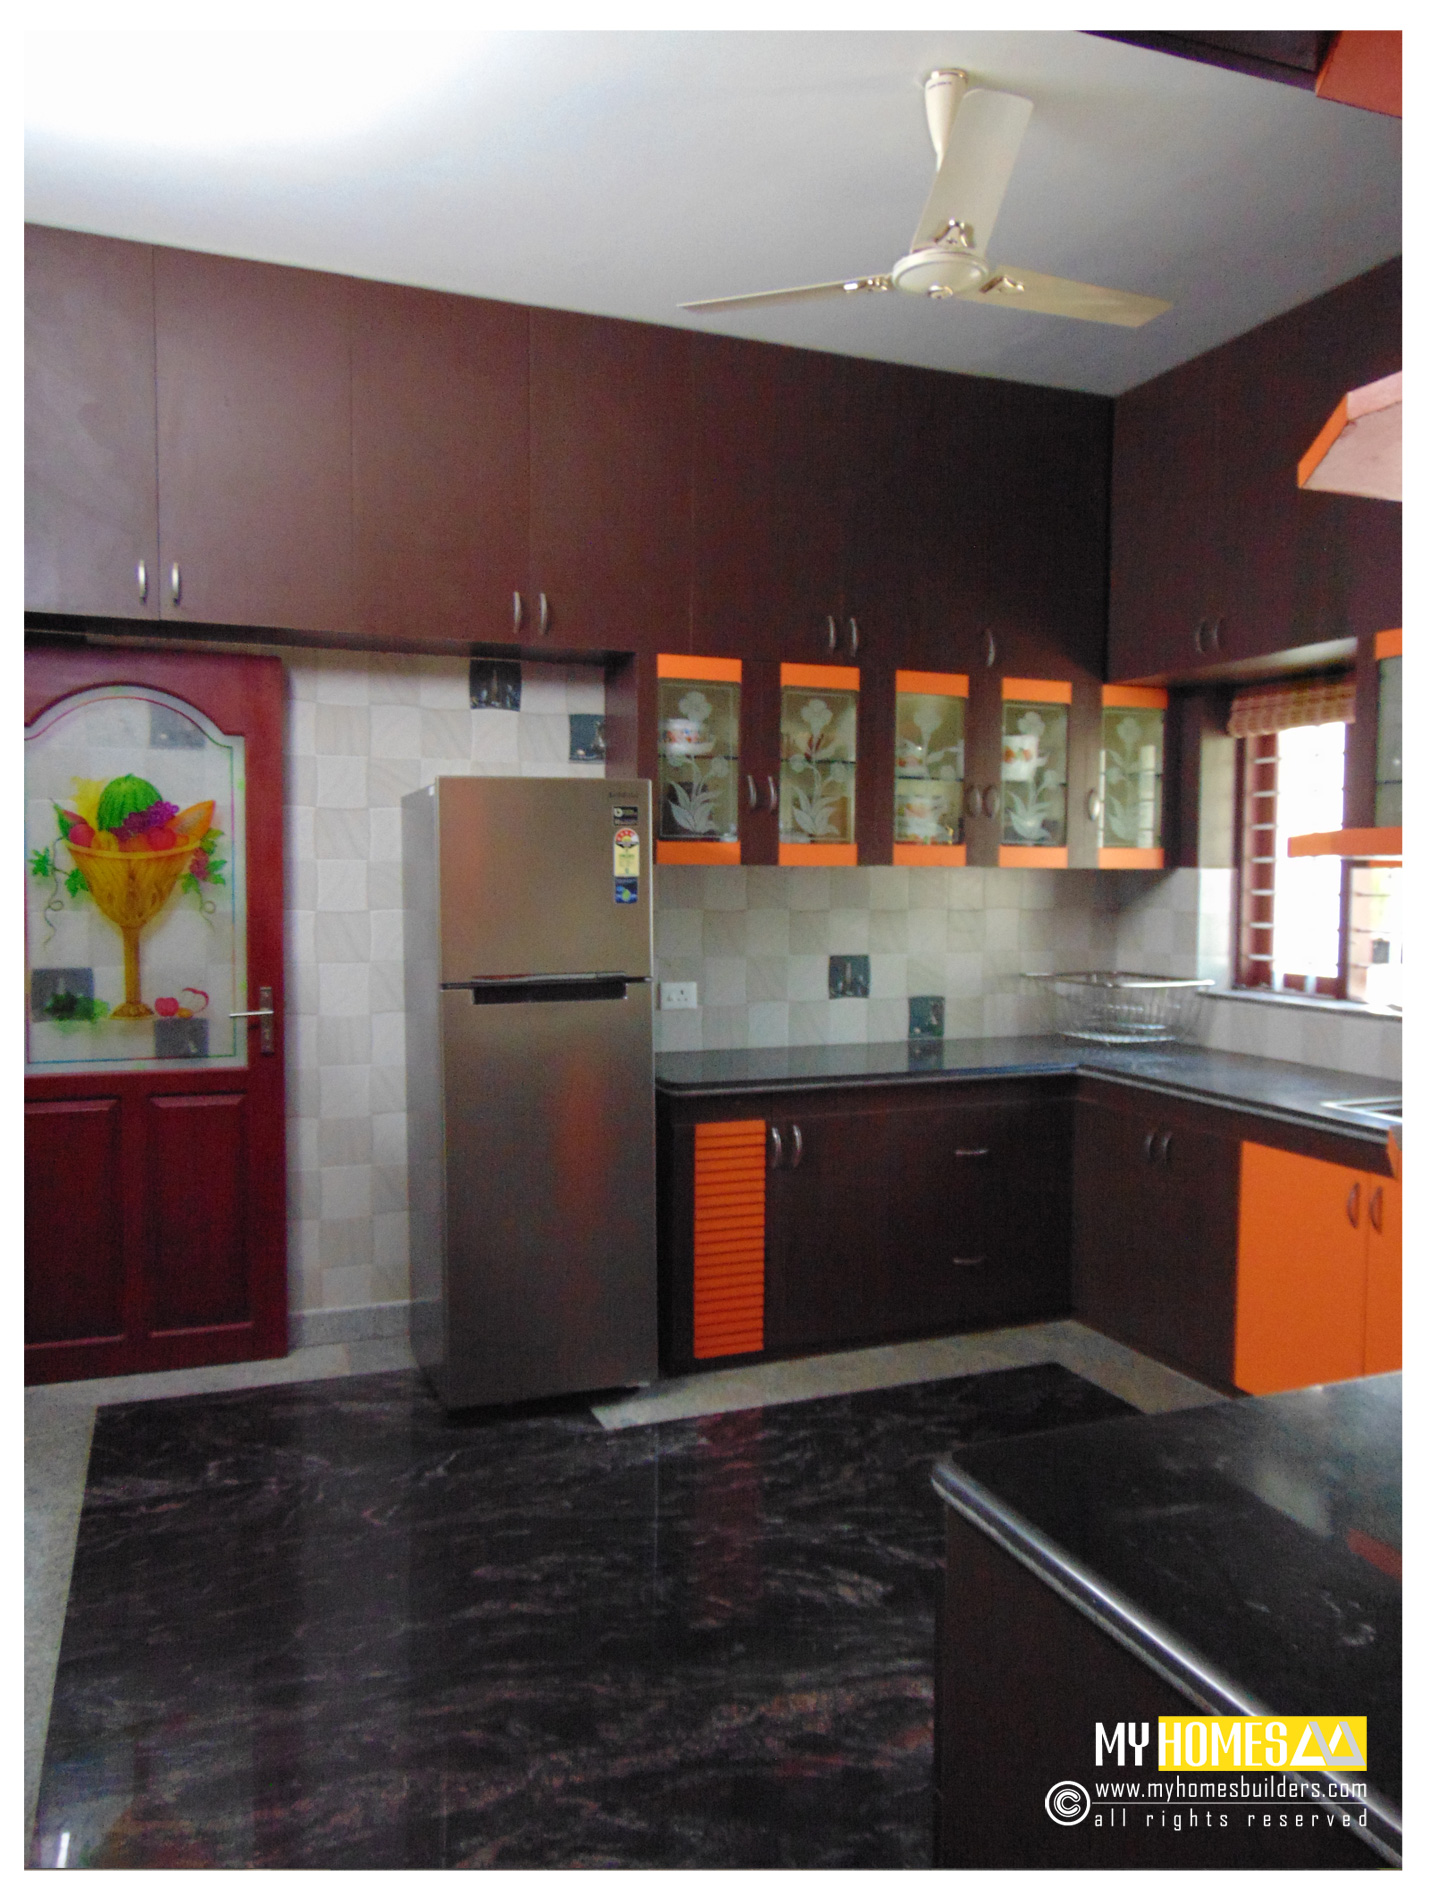 Kerala kitchen designs idea in modular style for house in india - Designs of kitchen ...